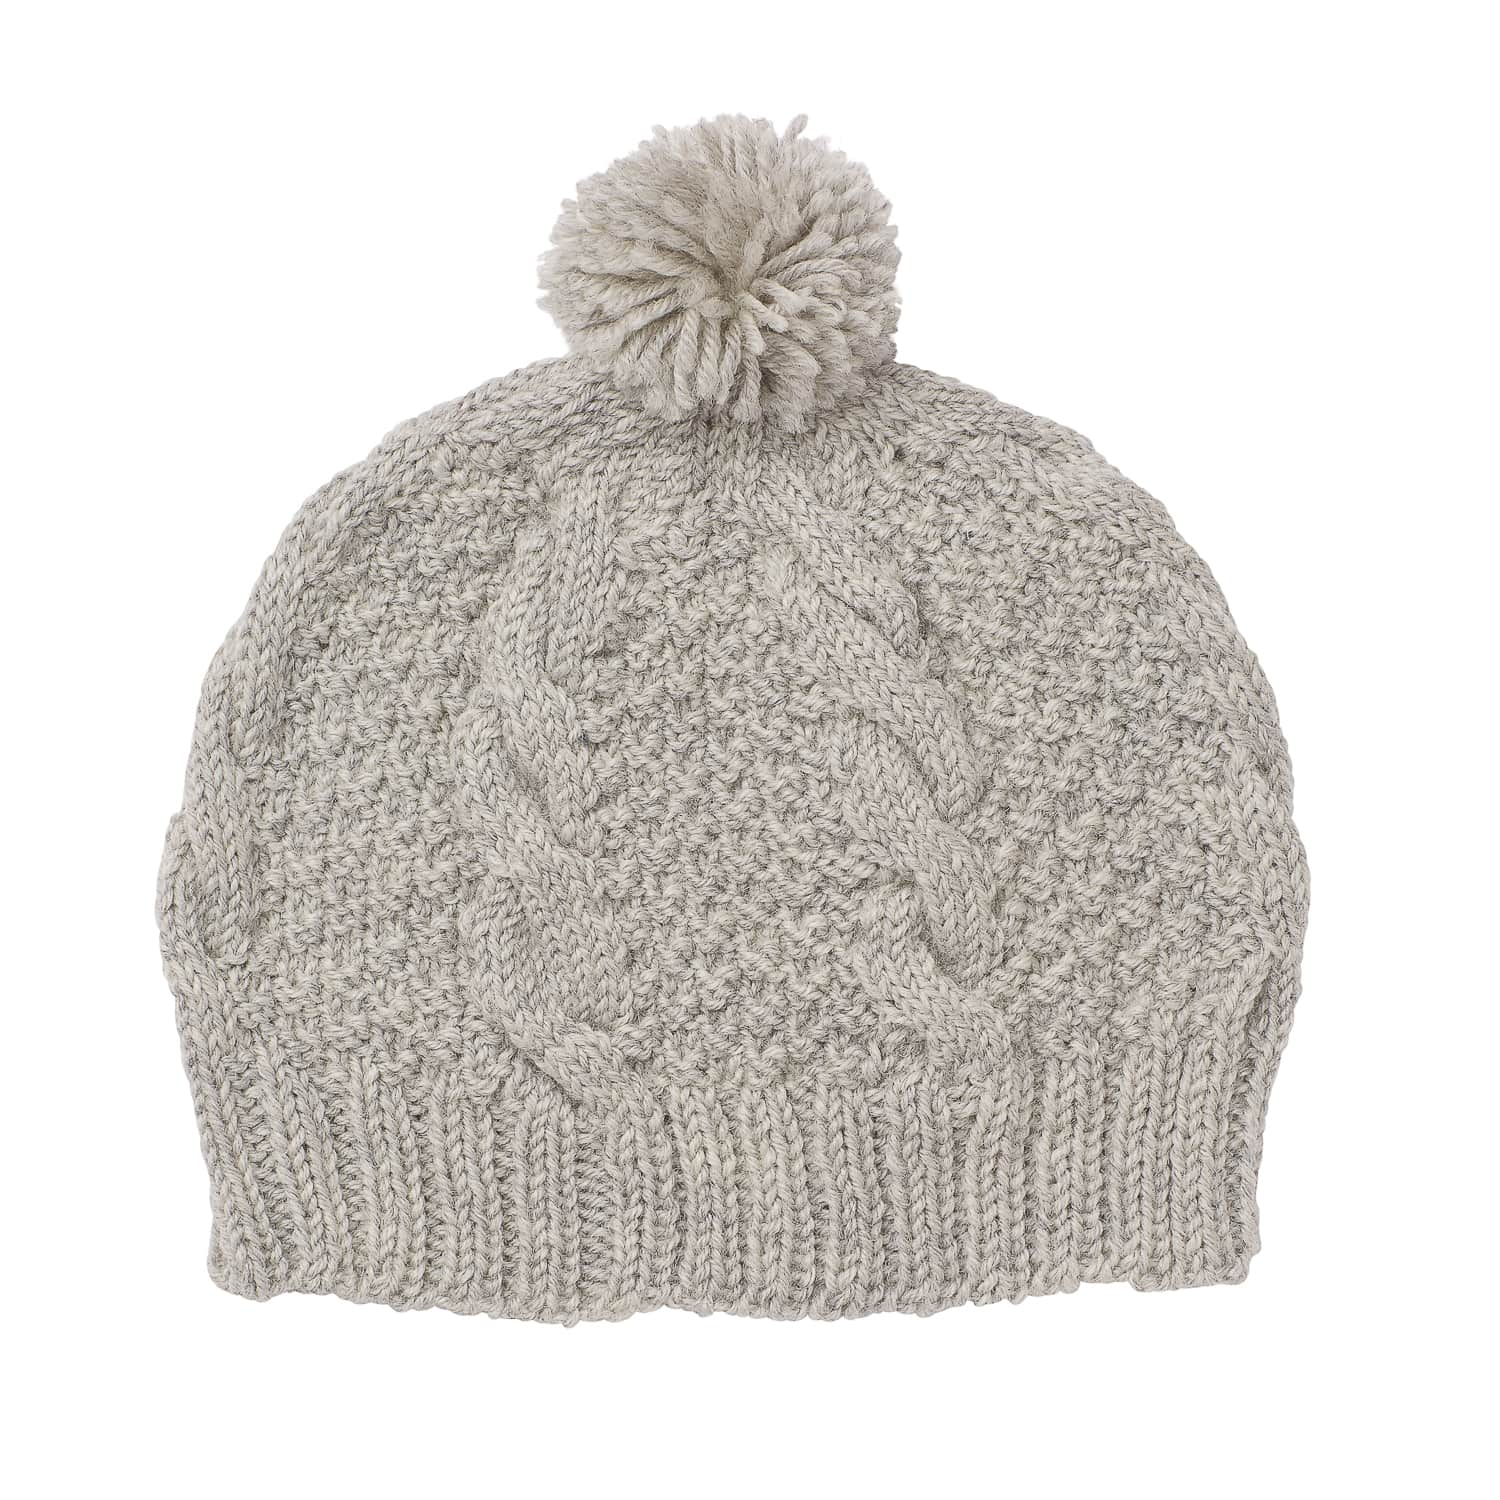 Acorn Kids Vines Beanie Grey Flat